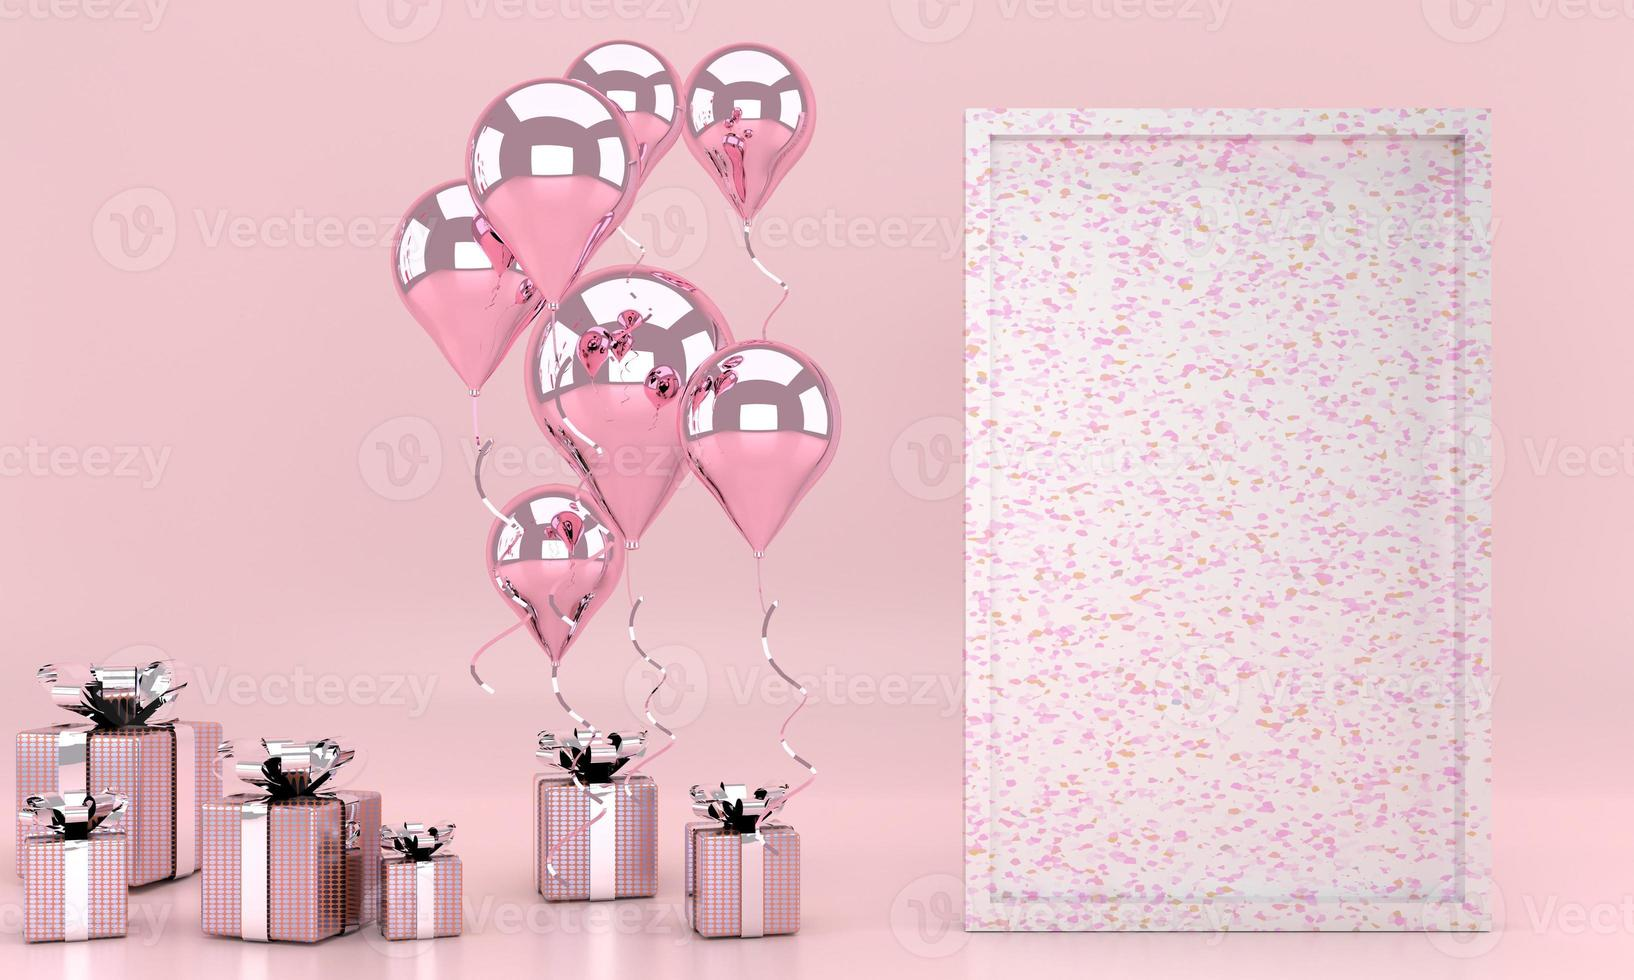 3d render interior with balloons, mock up poster frame, gift box in the room. Empty space for party, promotion social media banners, posters. Valentine's Day card photo